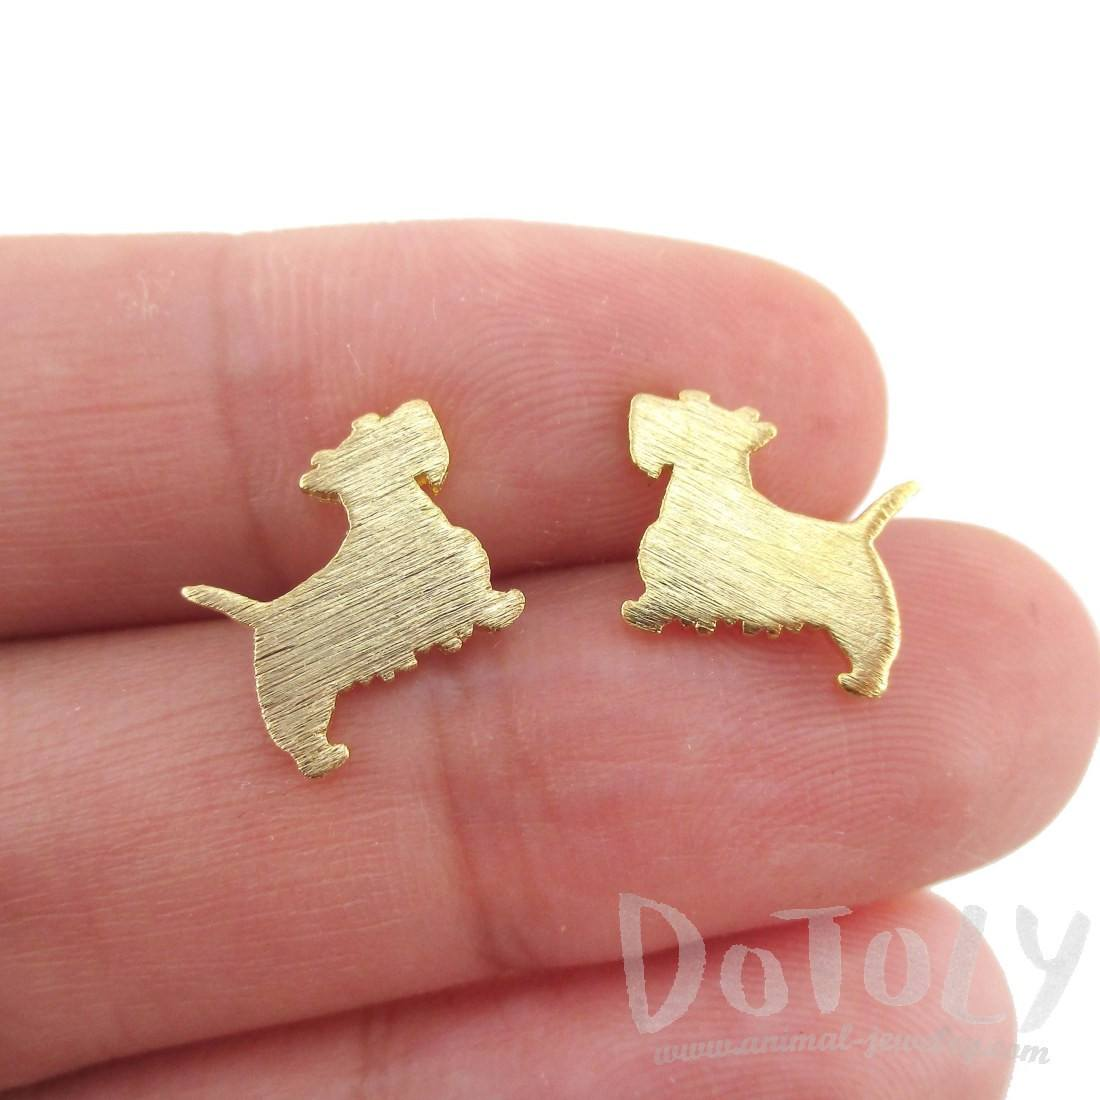 West Highland Terrier Dog Shaped Silhouette Stud Earrings in Gold